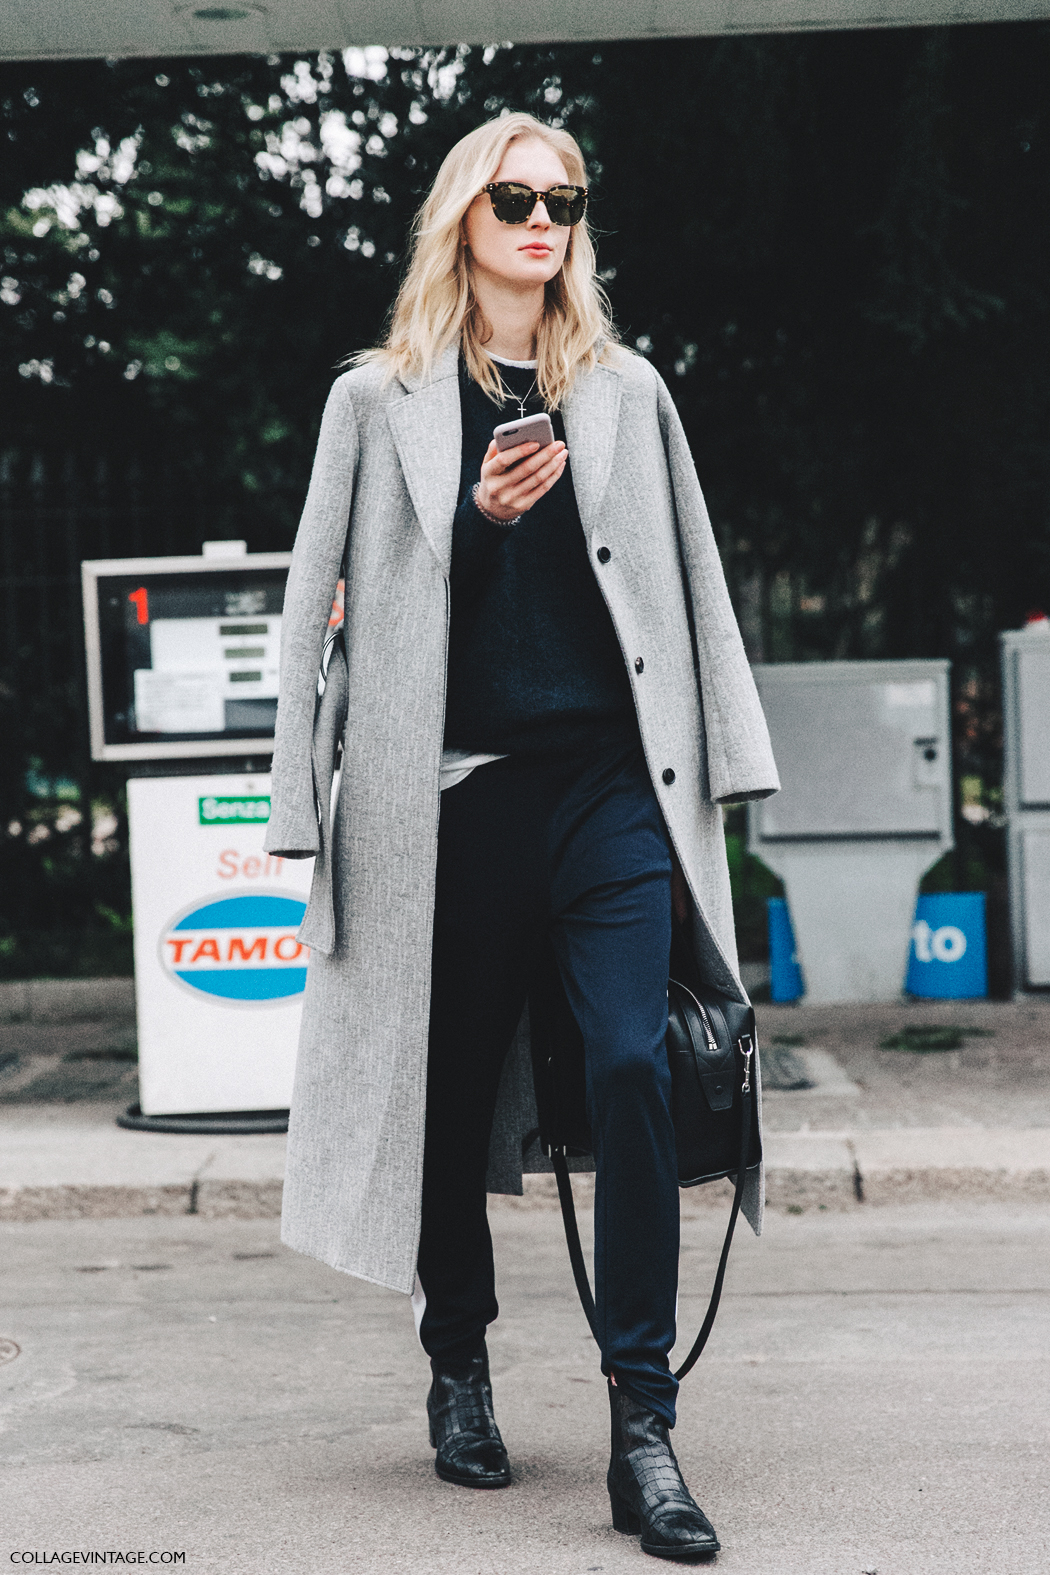 Milan_Fashion_Week_Fall_16-MFW-Street_Style-Collage_Vintage-Grey_Coat-Blue-Model-Tods-